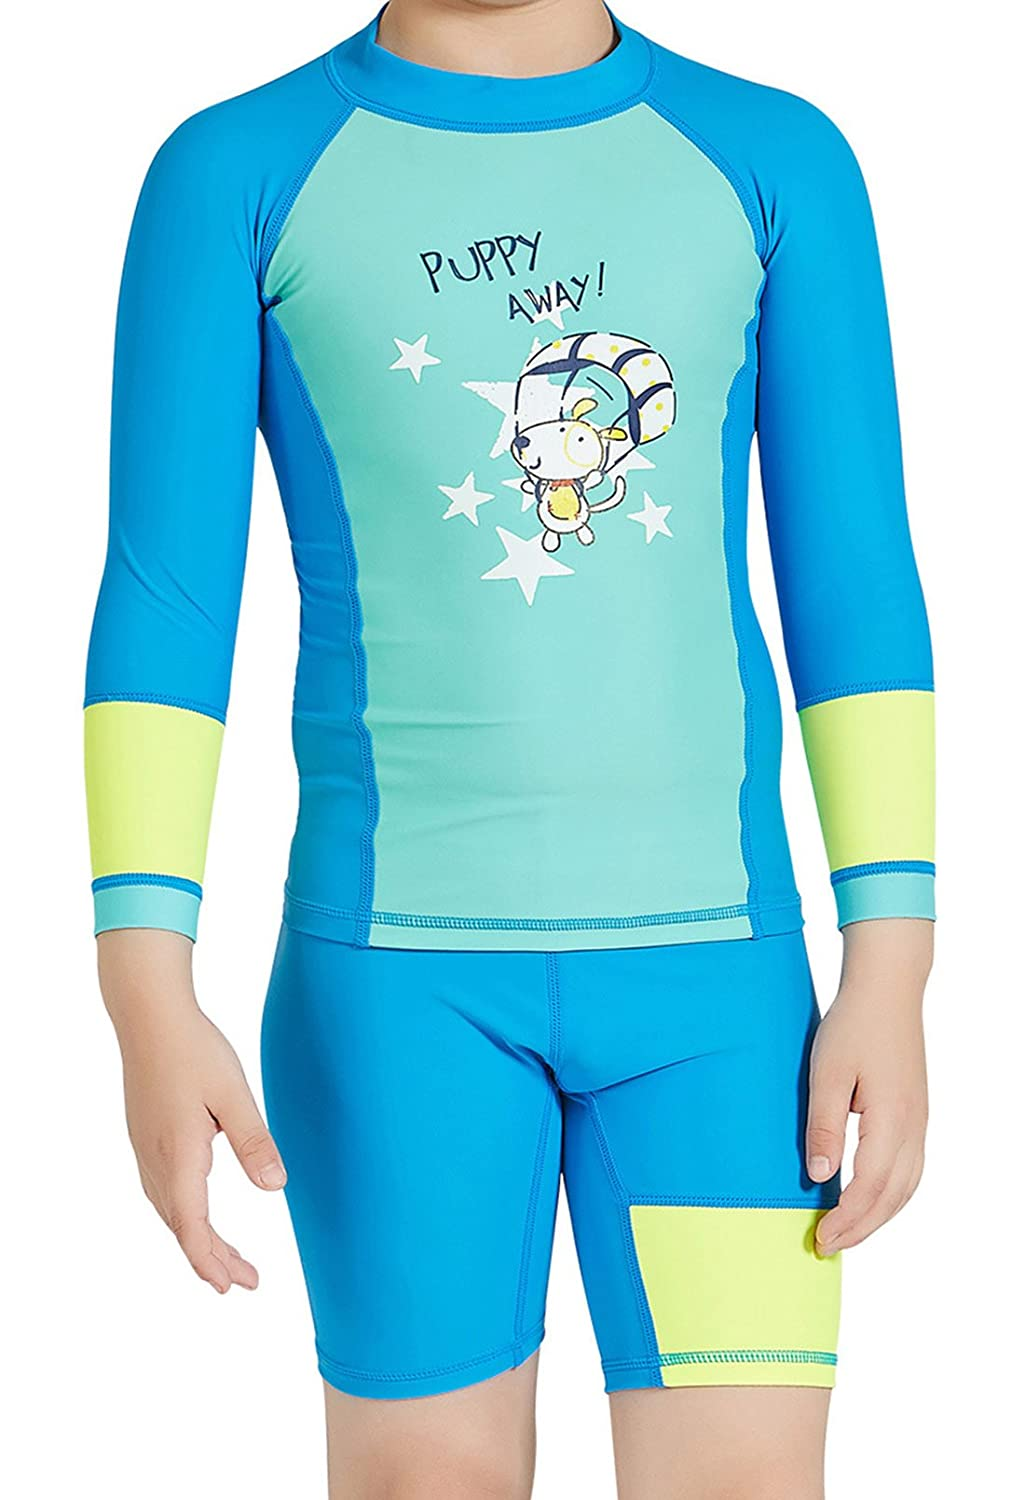 DIVE&SAIL Boys Two-Piece Rashguard Swimsuit Long Sleeve Swimwear with Shorts Set DIVE & SAIL